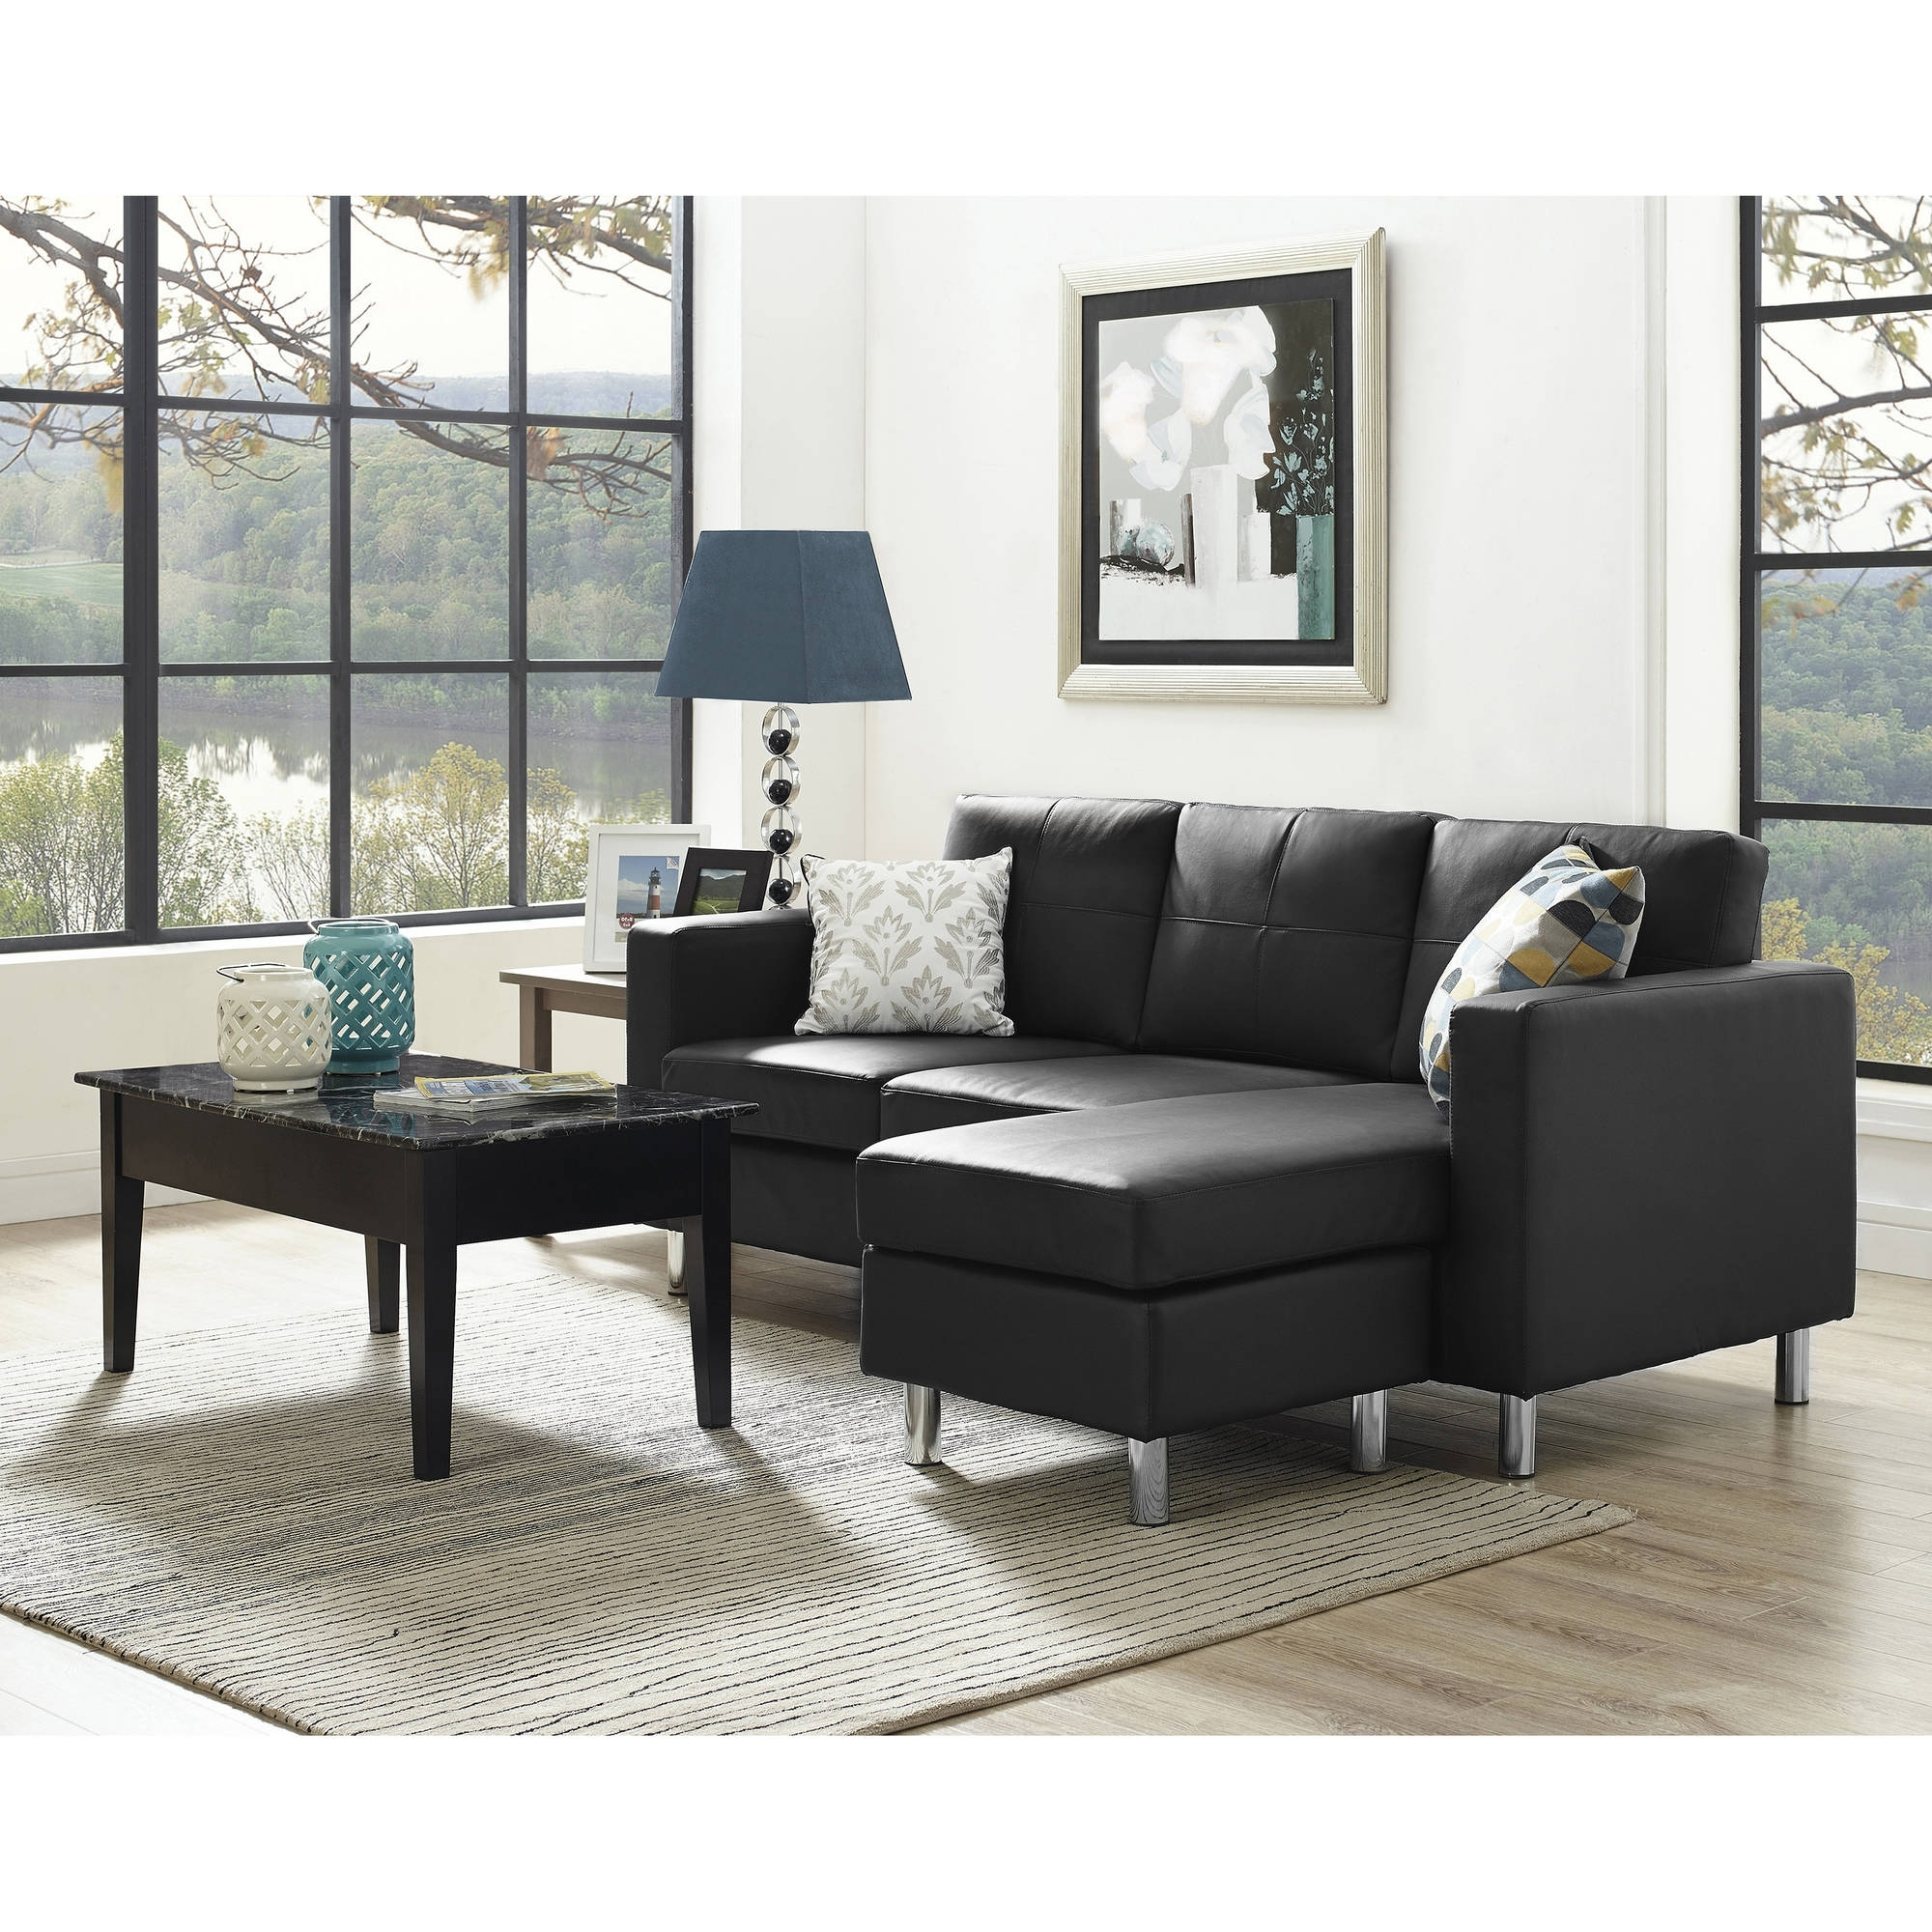 Narrow Spaces Sectional Sofas For Famous Dorel Living Small Spaces Configurable Sectional Sofa, Multiple (View 4 of 15)